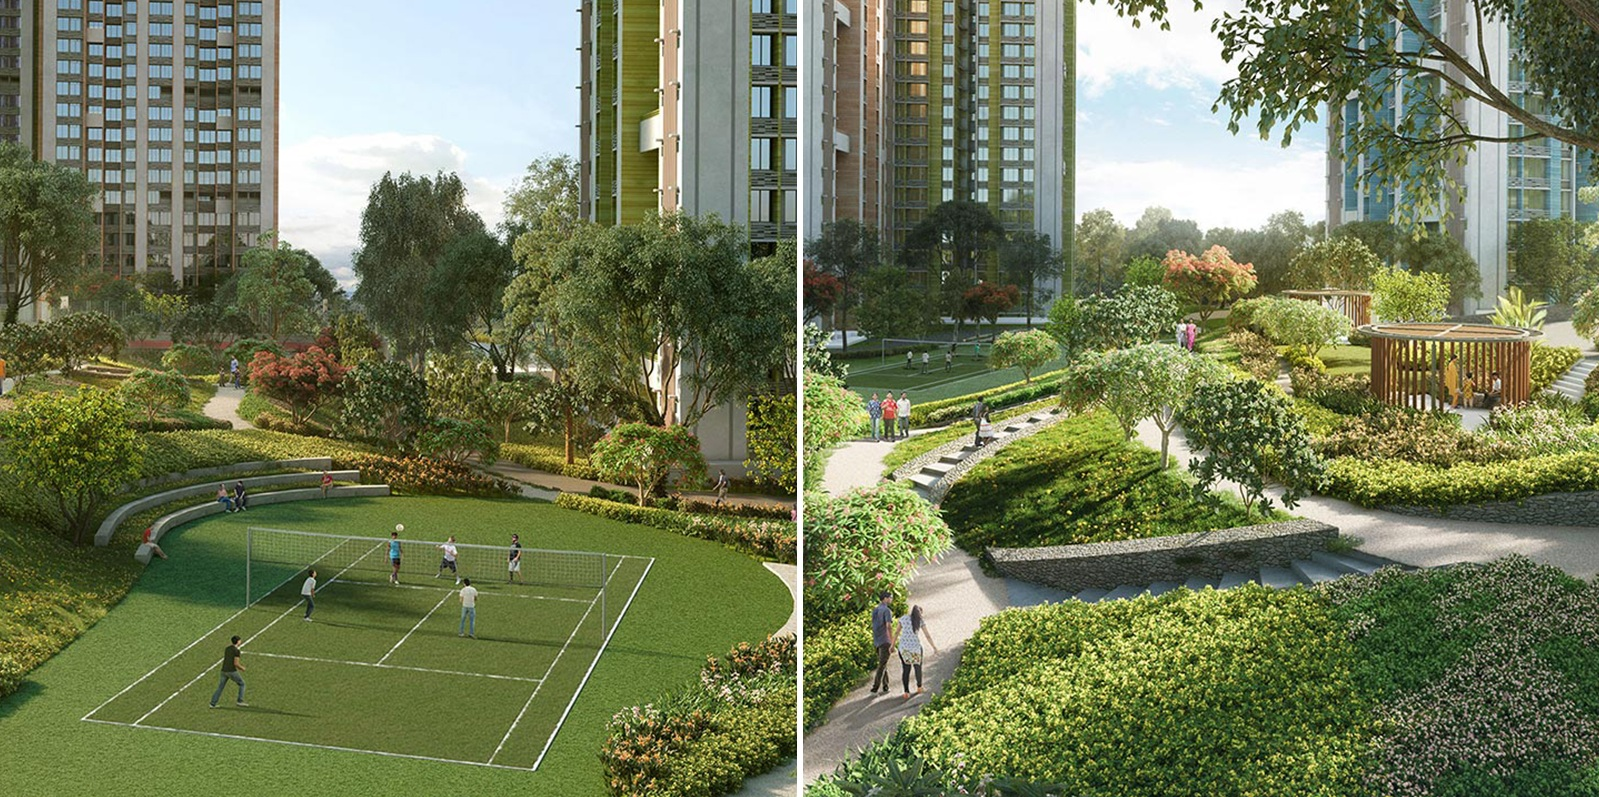 wadhwa wise city south block phase 1 b4 wing f3 amenities features9